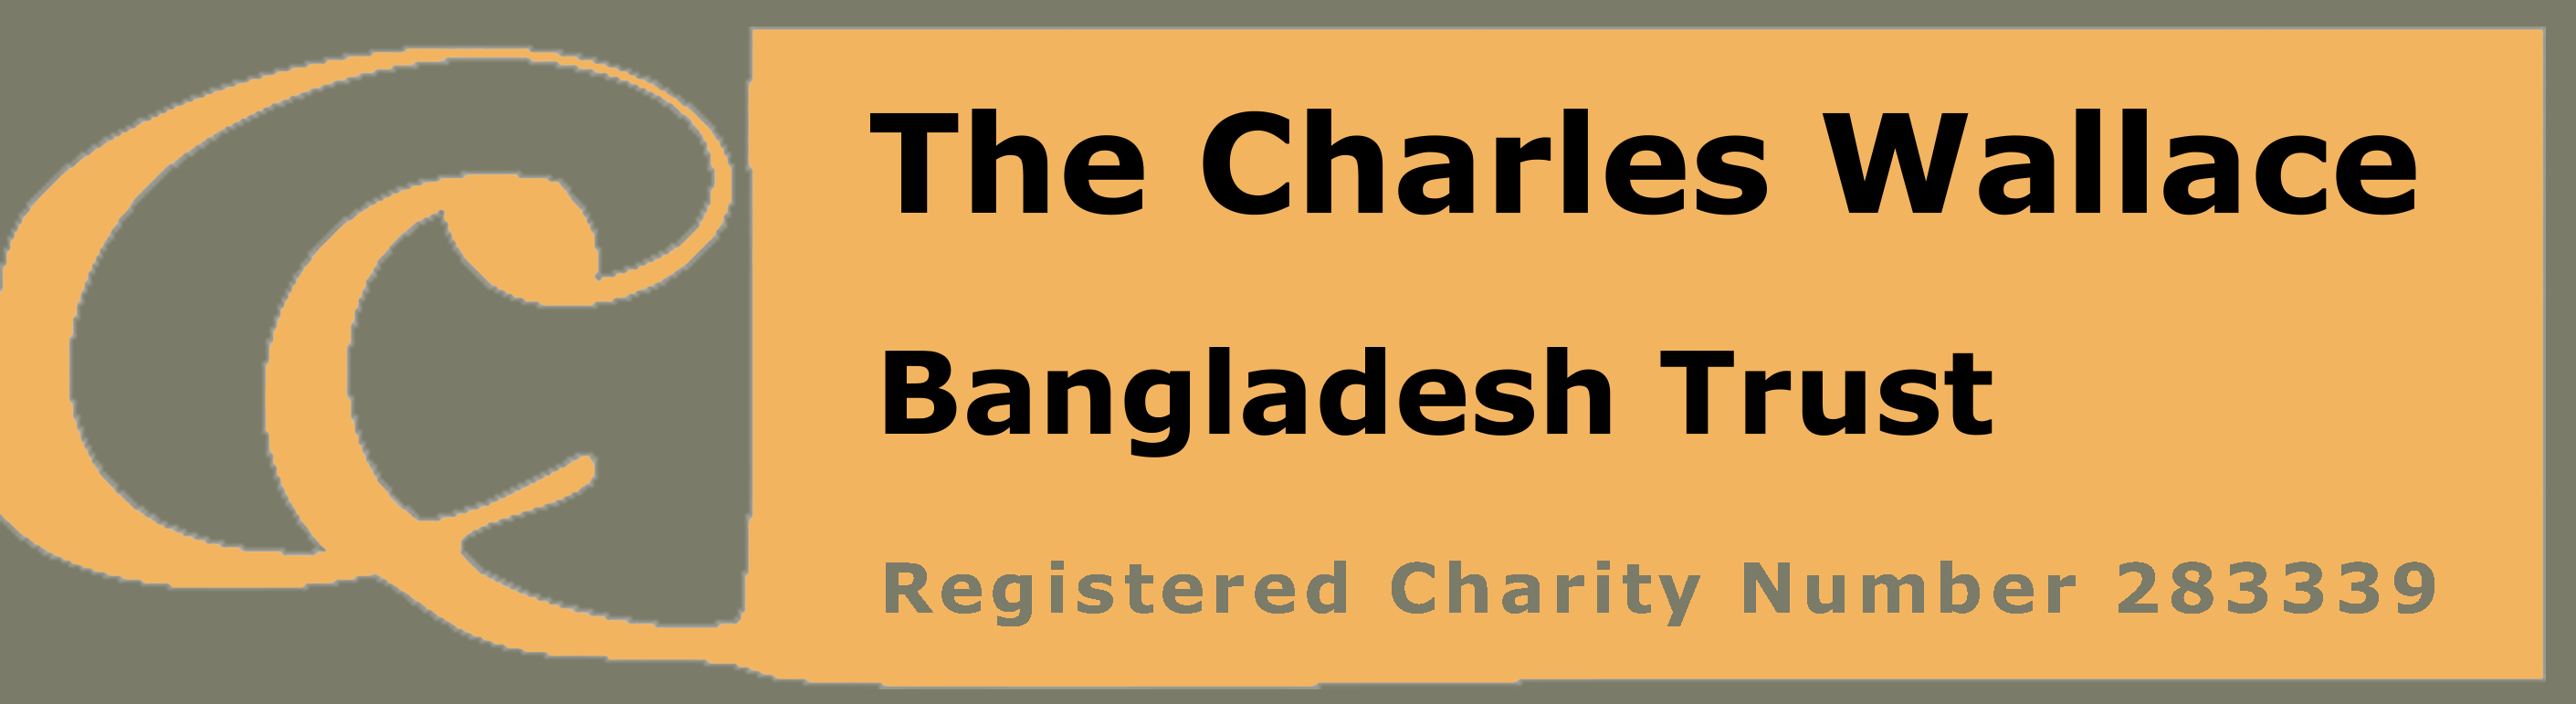 CWTLOGO_bangladesh_new